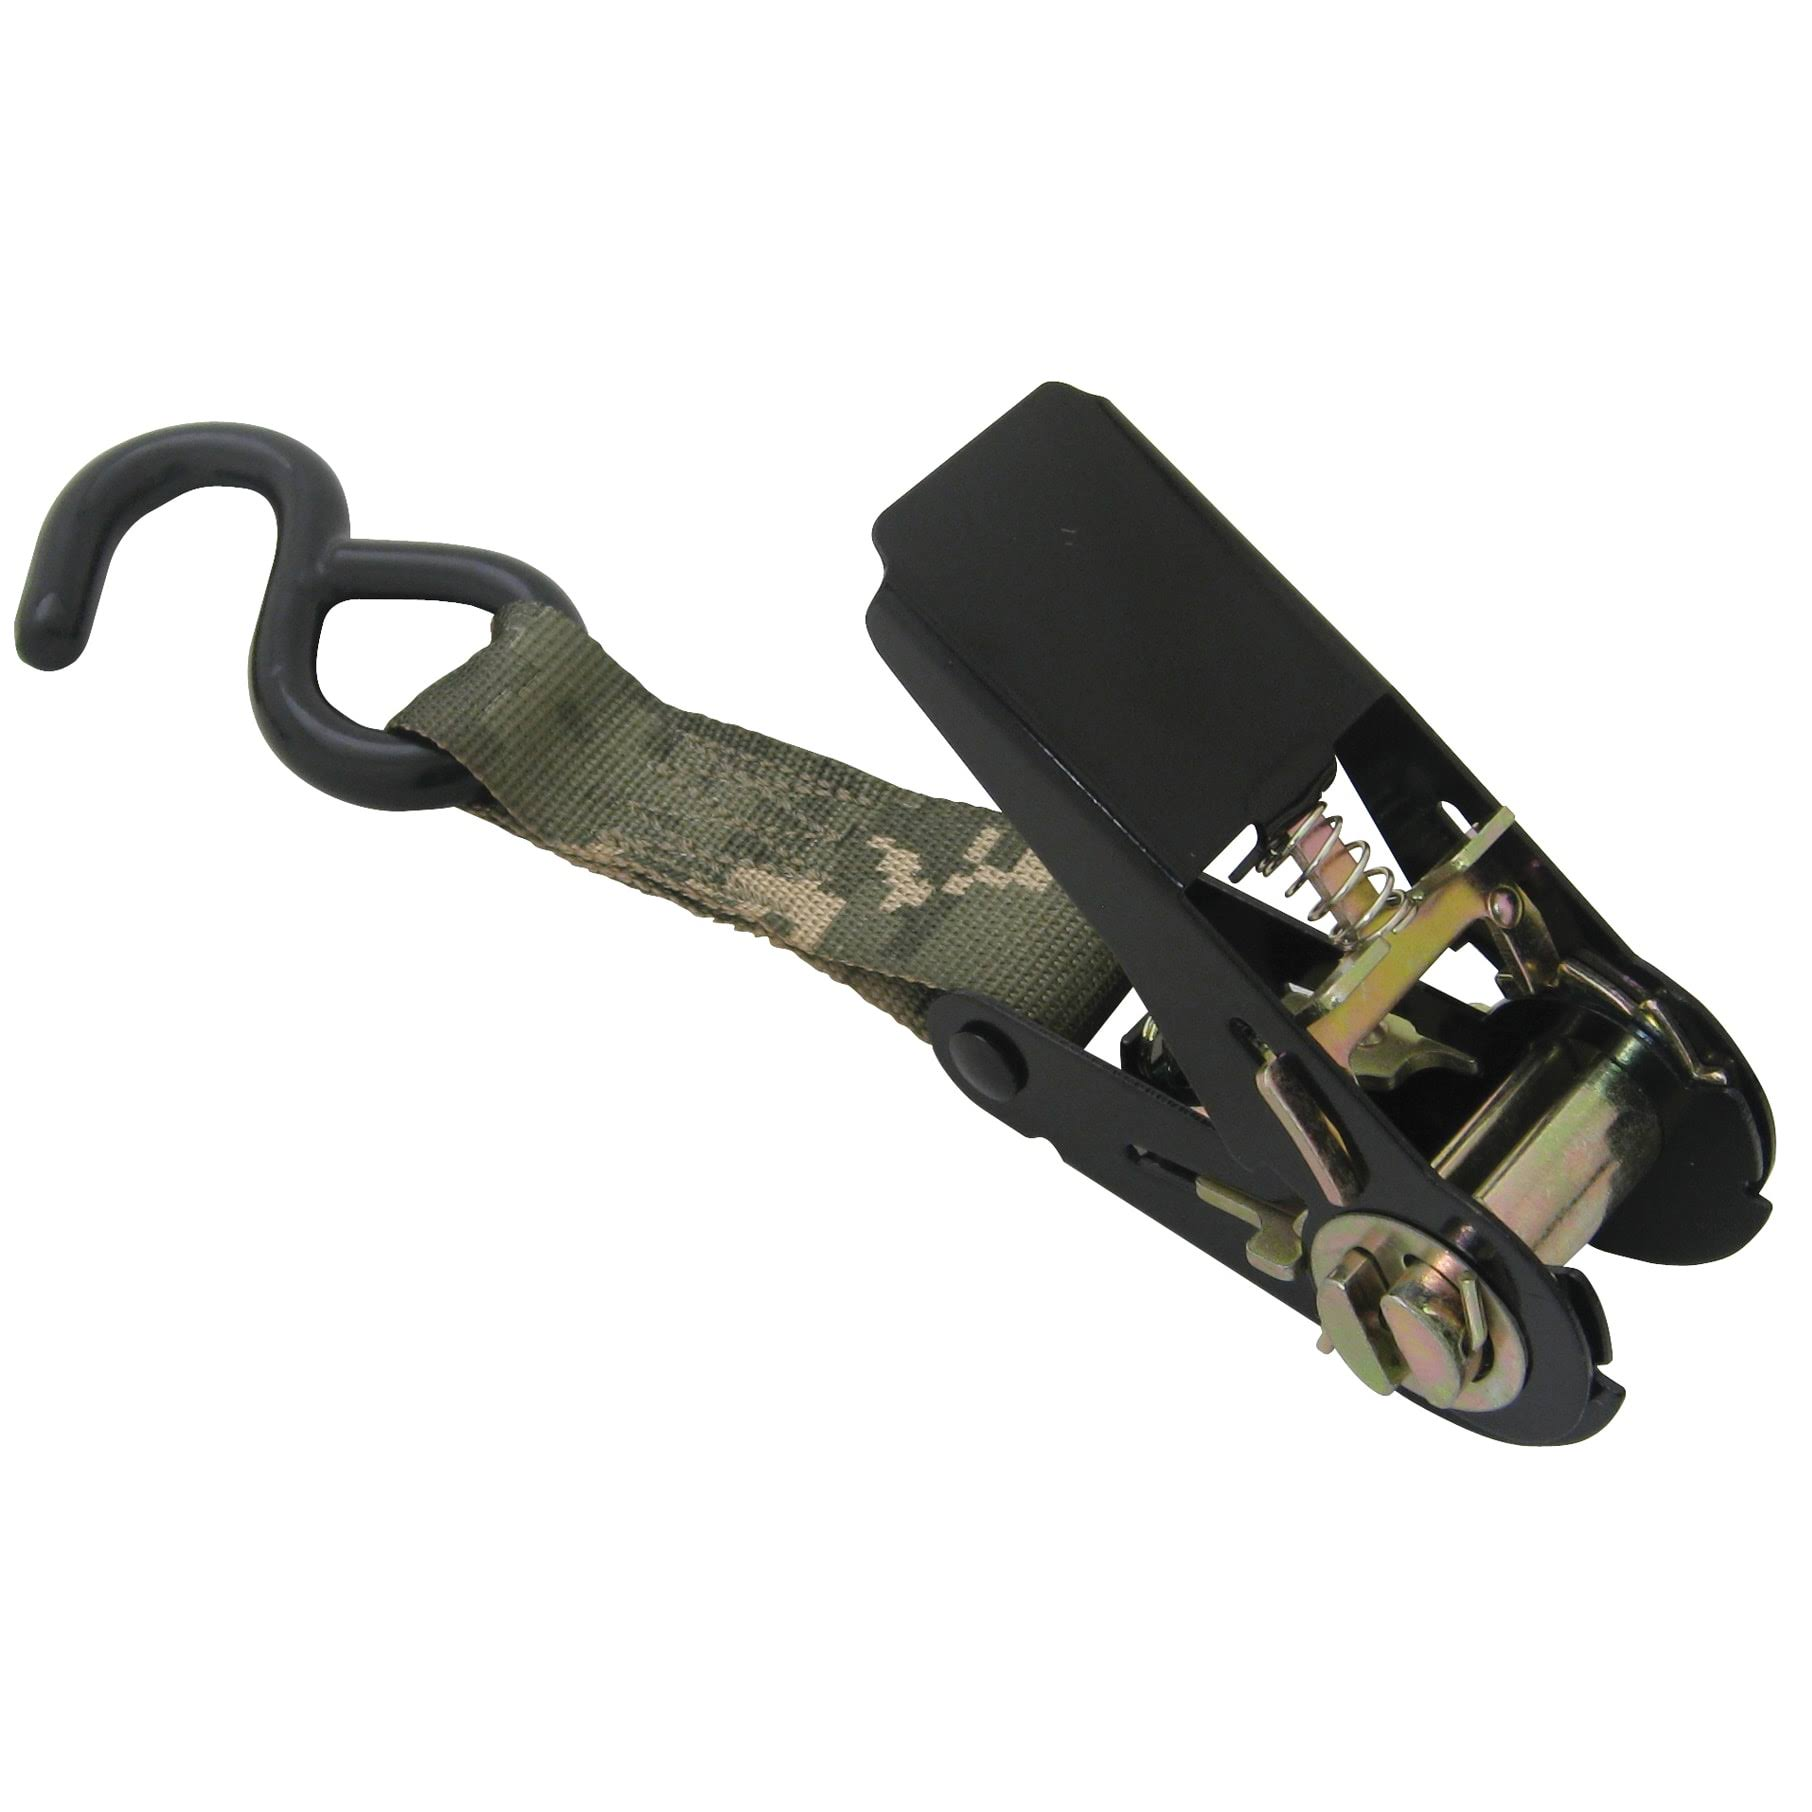 Usa Products Pro Grip Ratchet Tie Down - Camouflage, 9' x 1""